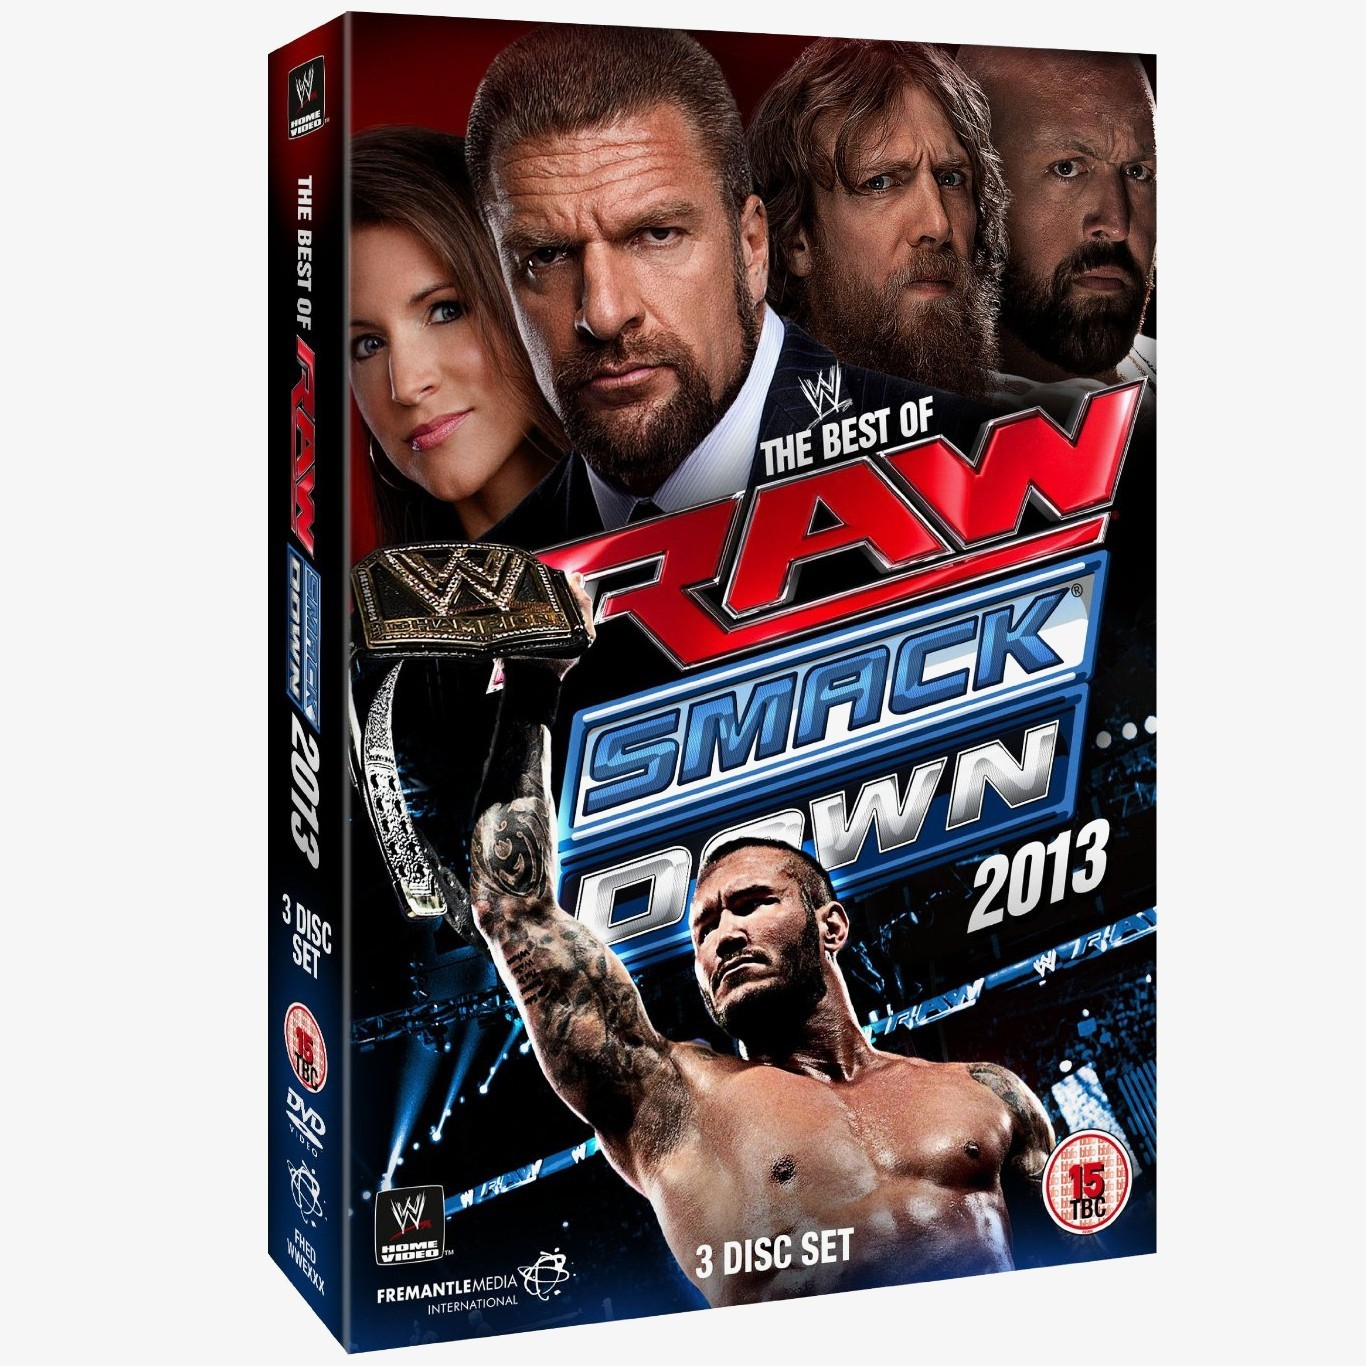 Wwe tables ladders and chairs 2013 poster - Wwe The Best Of Raw And Smackdown 2013 Dvd 3 Discs